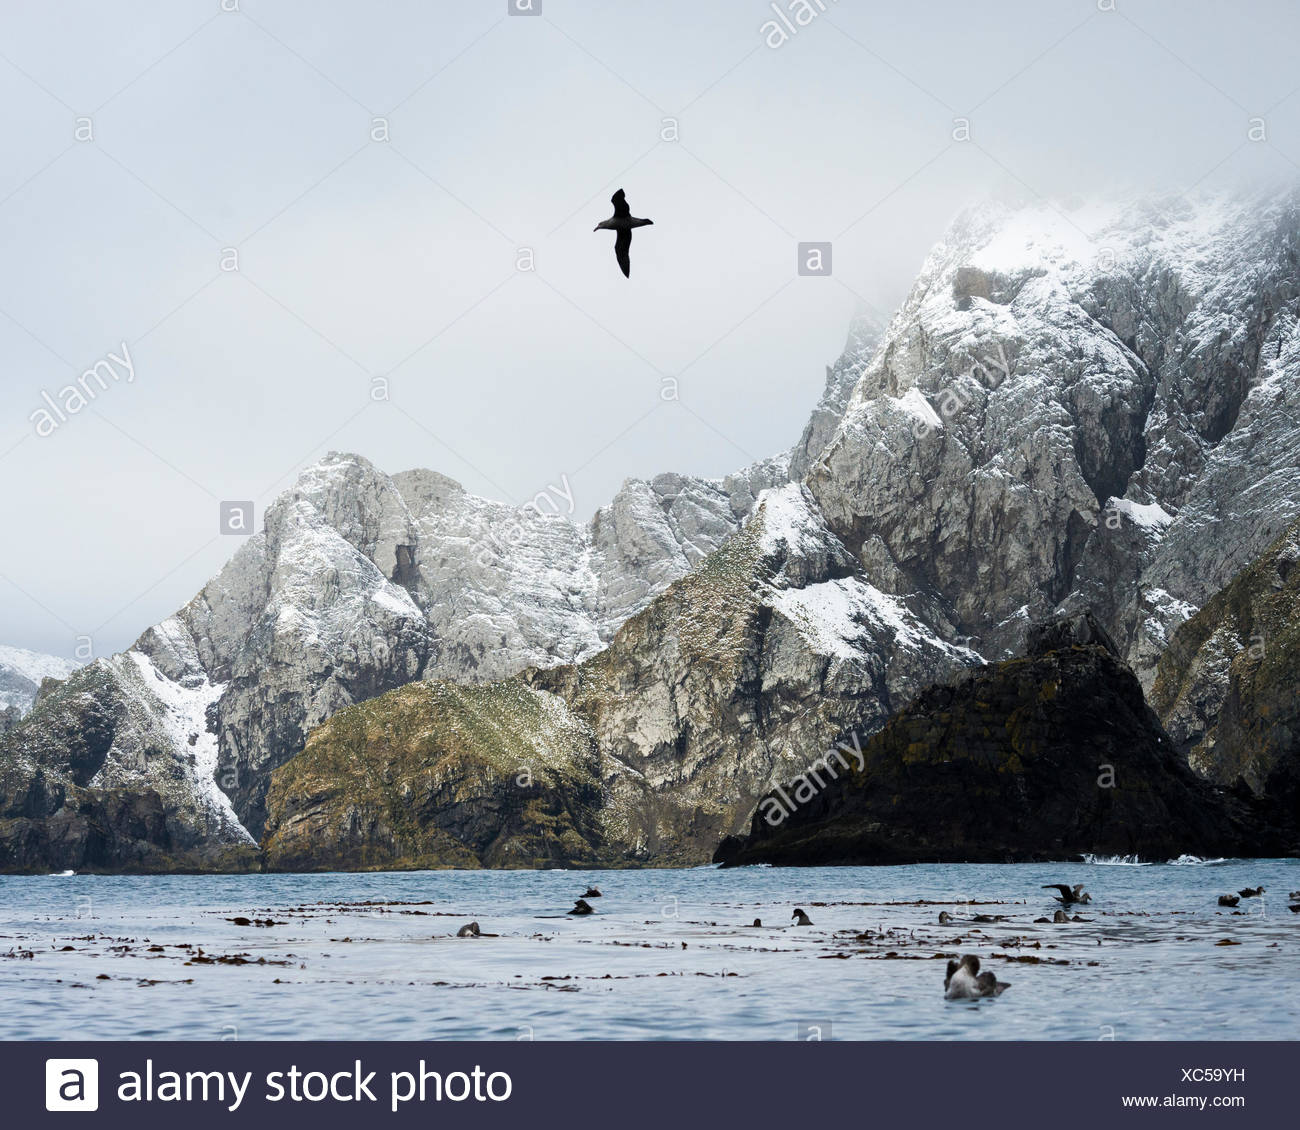 Birds in the water and one bird in flight along a rugged coastline of South Georgia Island - Stock Image